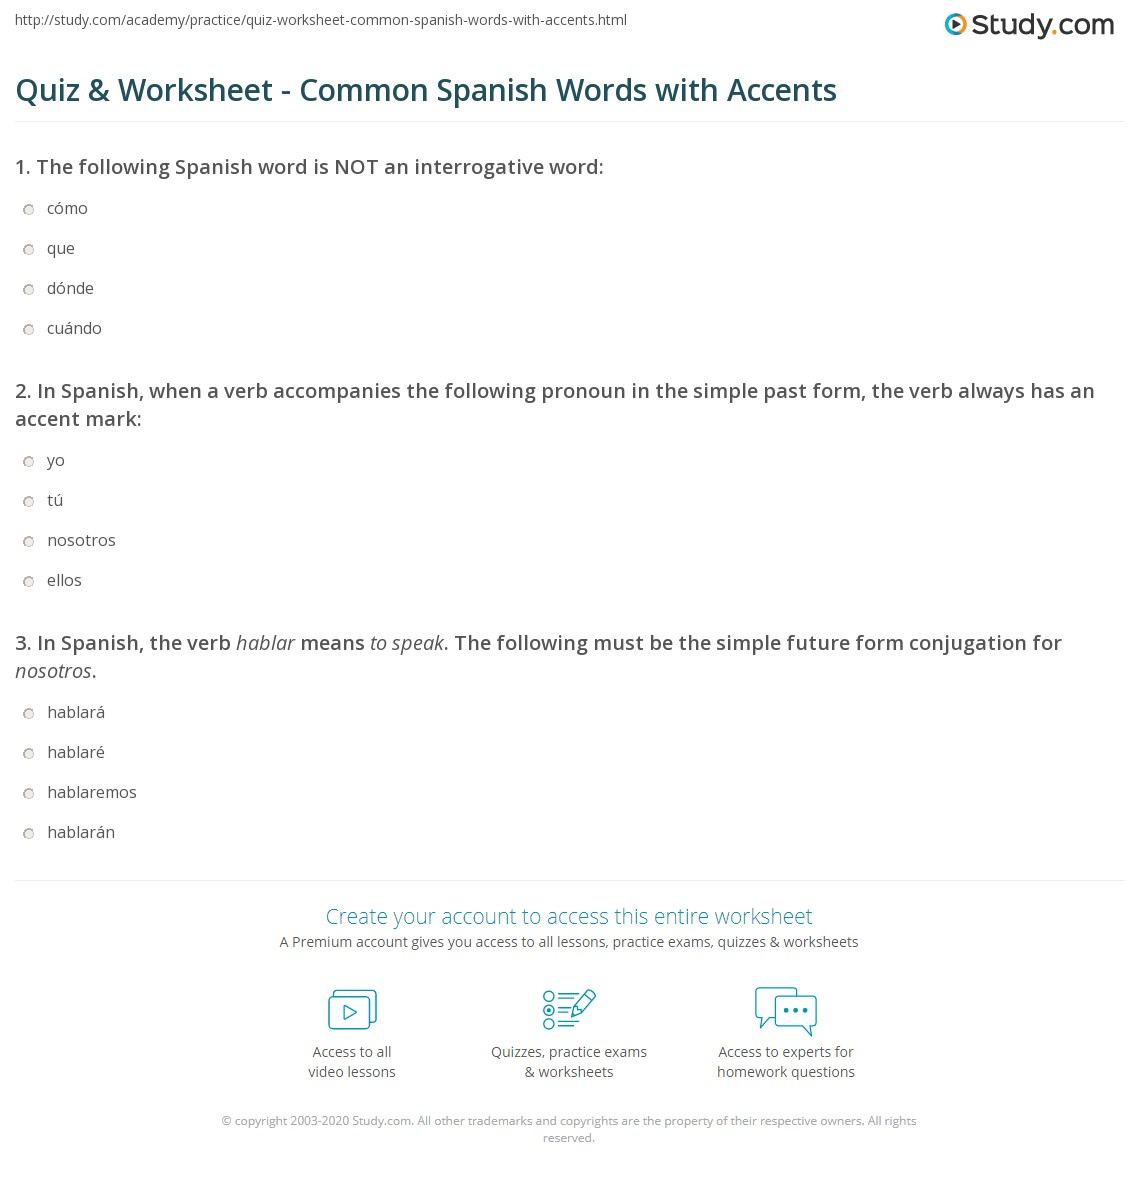 worksheet Worksheets In Spanish quiz worksheet common spanish words with accents study com print worksheet